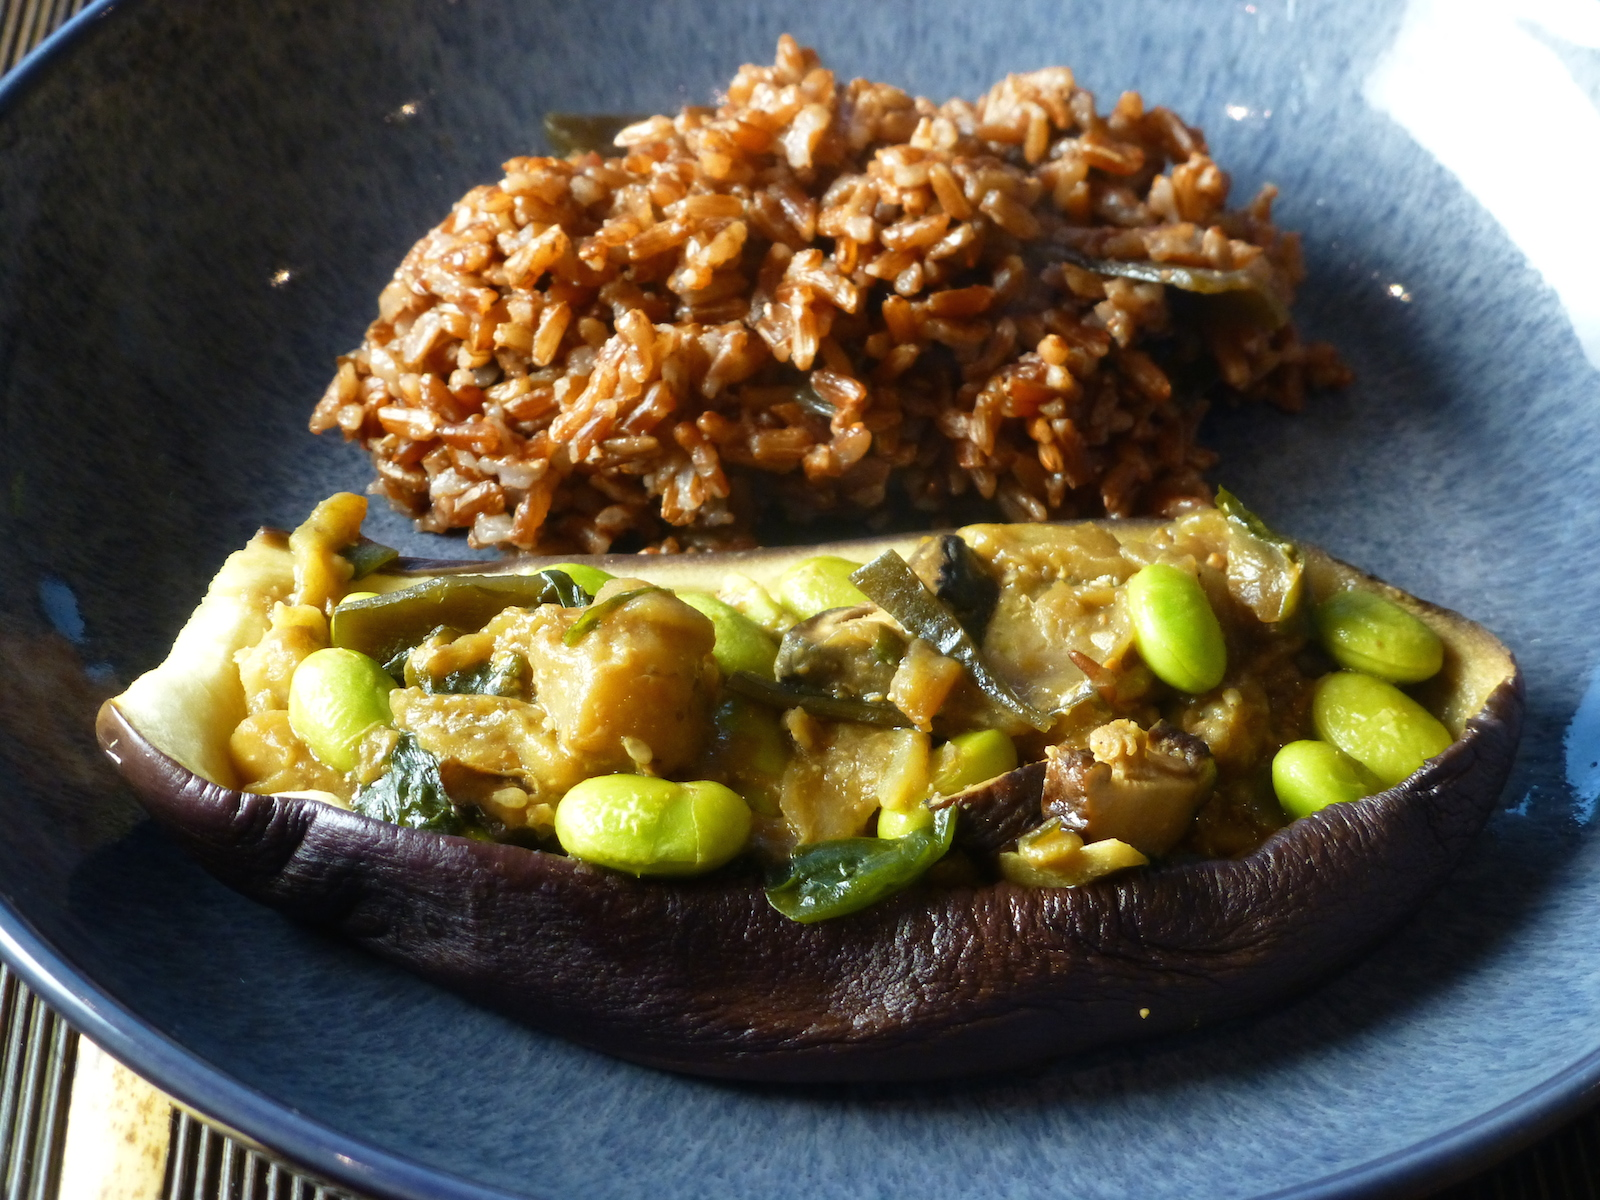 Murakami meal #3: Aubergine boats with soy beans and ginger served with red rice